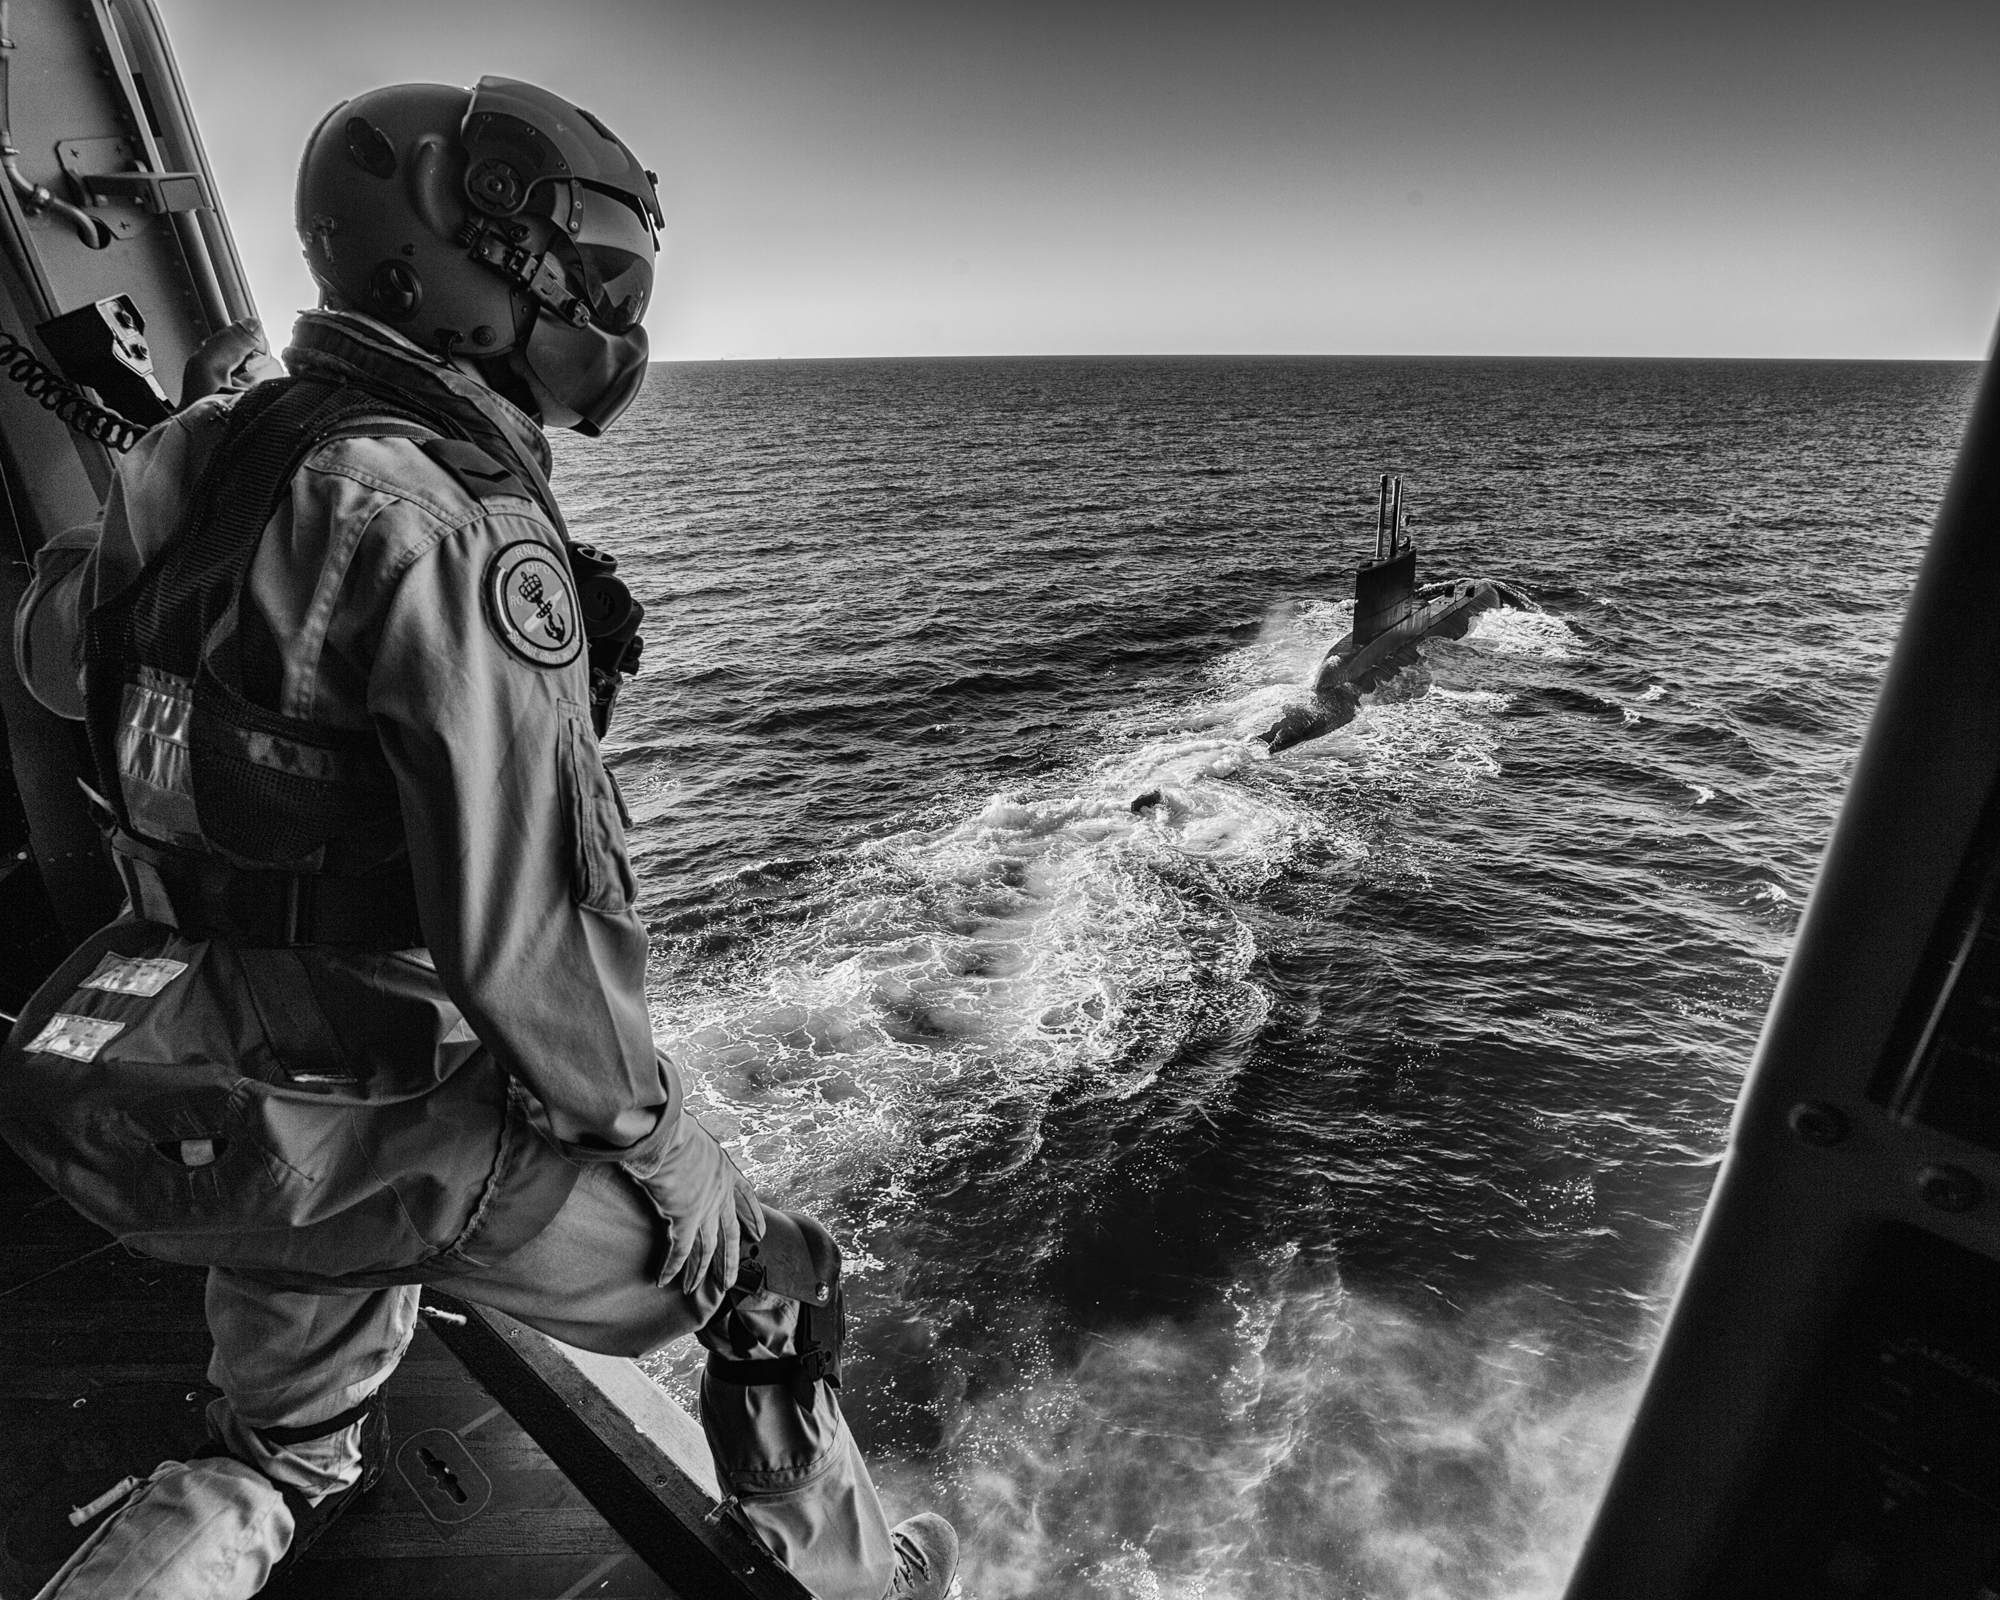 SNMG1-SEA SHIELD15- Deutch rescue diver watching TUR submarine TCG Atilay (S347) during SEA SHIELD15 exercise - 23 JULY 2015 - Photo by WO ARTIGUES (HQ MARCOM).  Exercise Sea Shield 15 is a multinational combat exercise against submarines, organized by the Romanian Naval Forces, aimed at developing international cooperation in the defence field with similar structures in the NATO member and partner states, with a view to strengthening and developing joint fight procedures. Approx. 2,000 troops from seven NATO member-states - Romania, Bulgaria, Greece, The Netherlands, Portugal, USA and Turkey, plus Ukraine, are going to participate over July 20-24 in the multinational military exercise Sea Shield 15, in the Black Sea.